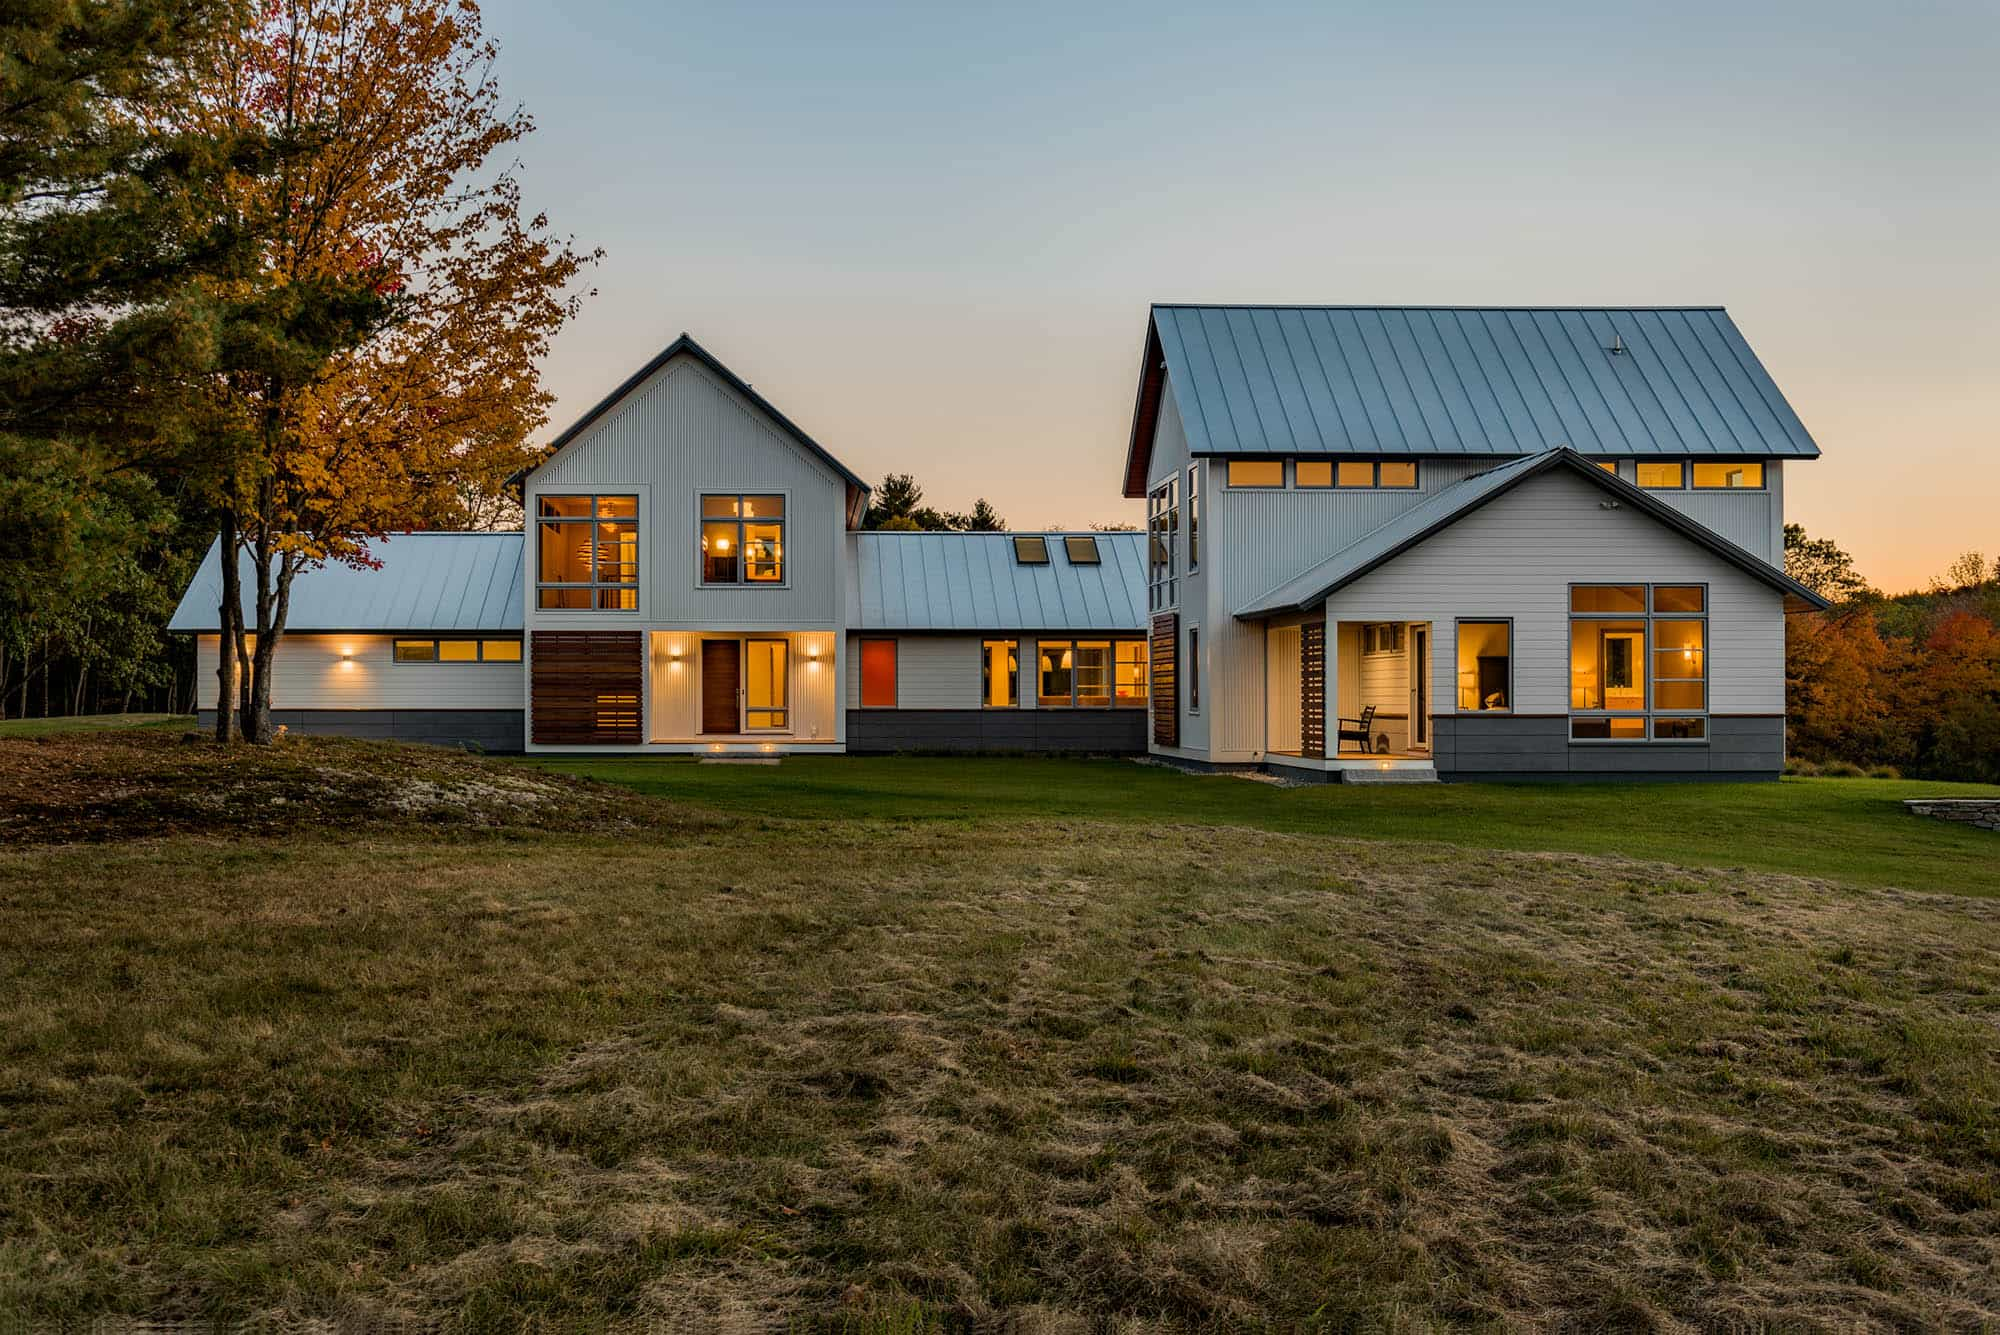 The Pole Barn Home An Unique and Affordable Home Idea